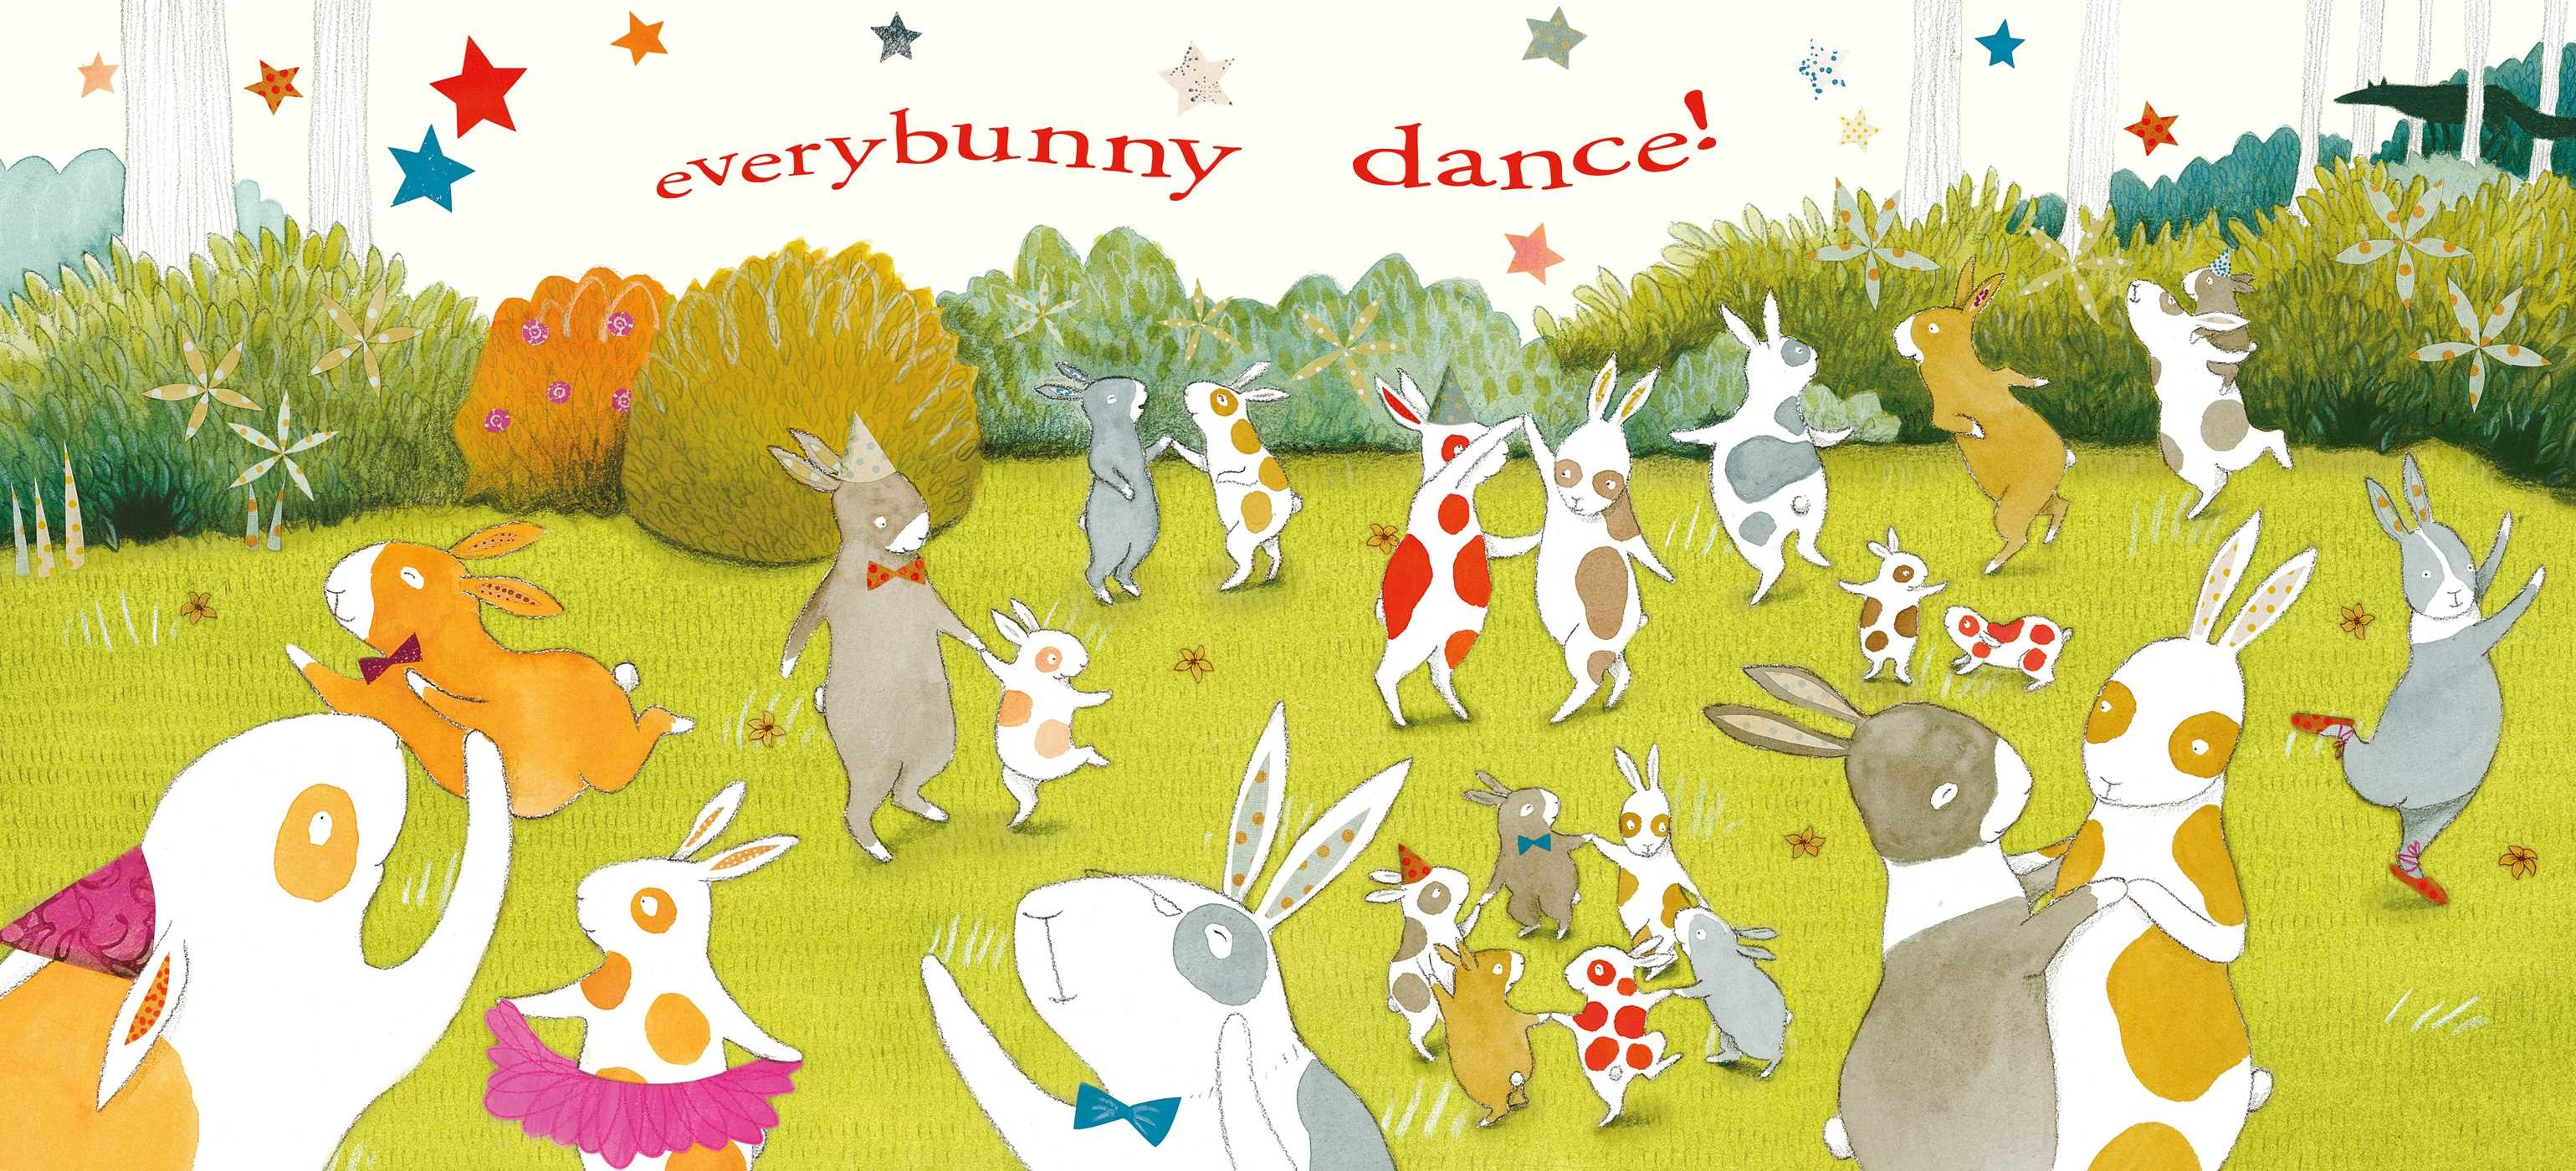 Everybunny dance 9781481498227.in01